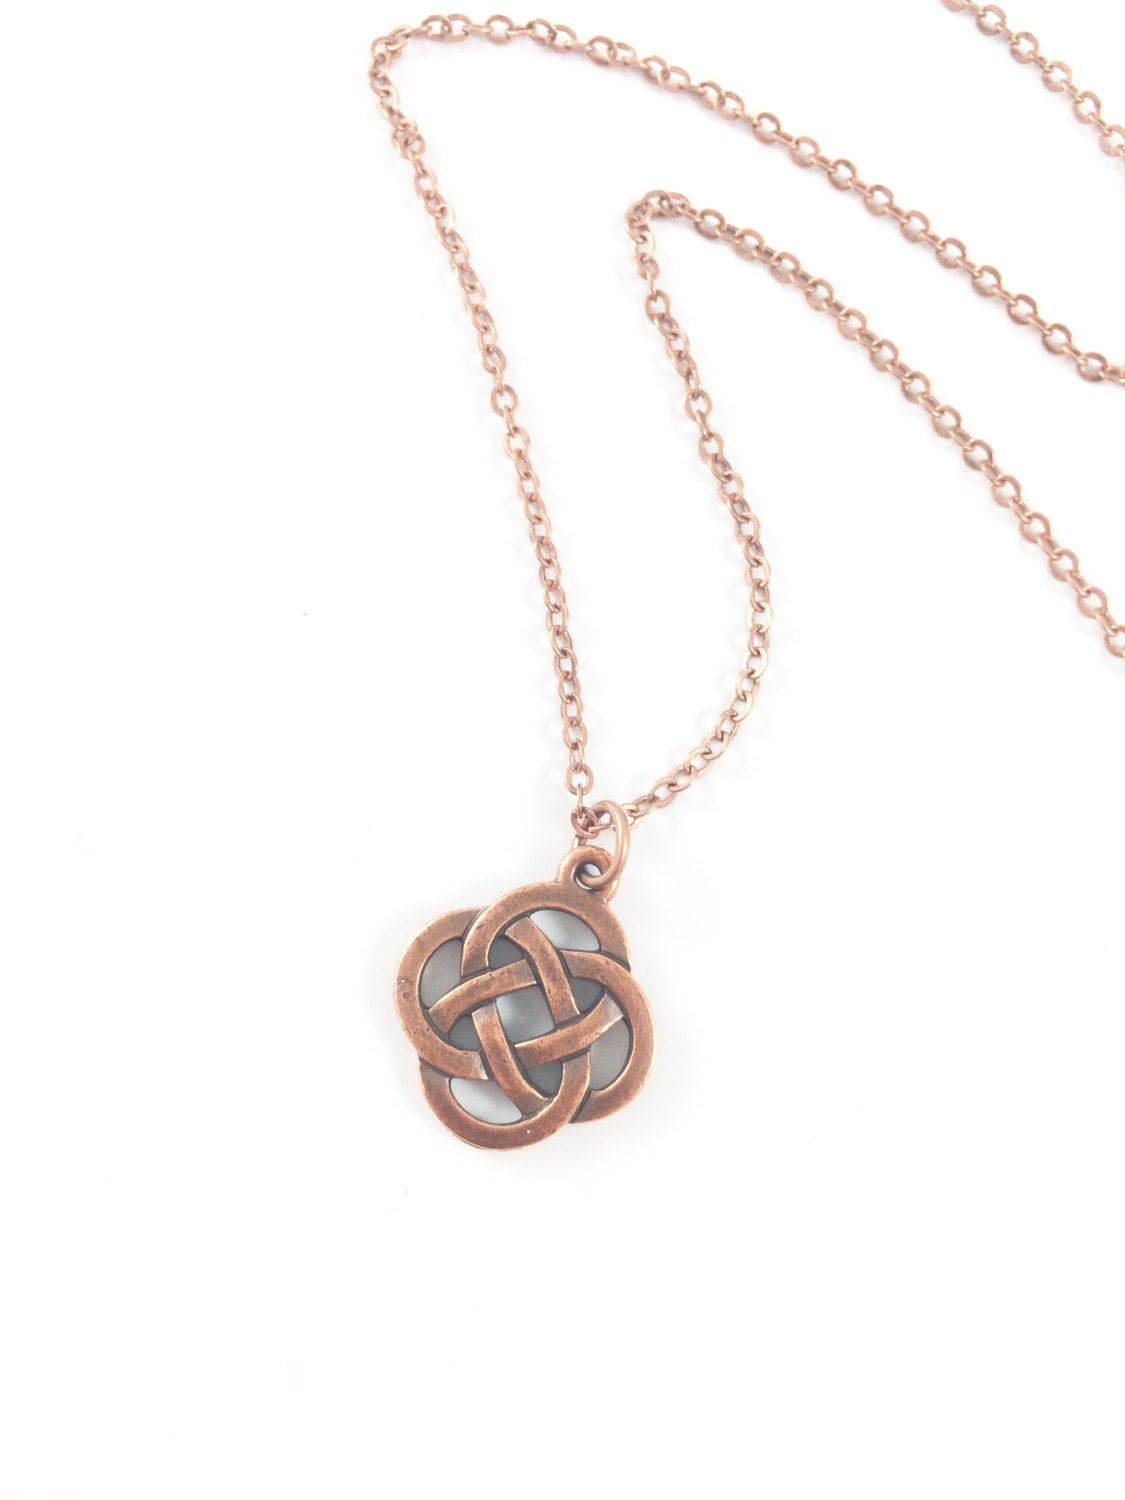 celtic necklace love knot necklace eternity necklace irish. Black Bedroom Furniture Sets. Home Design Ideas